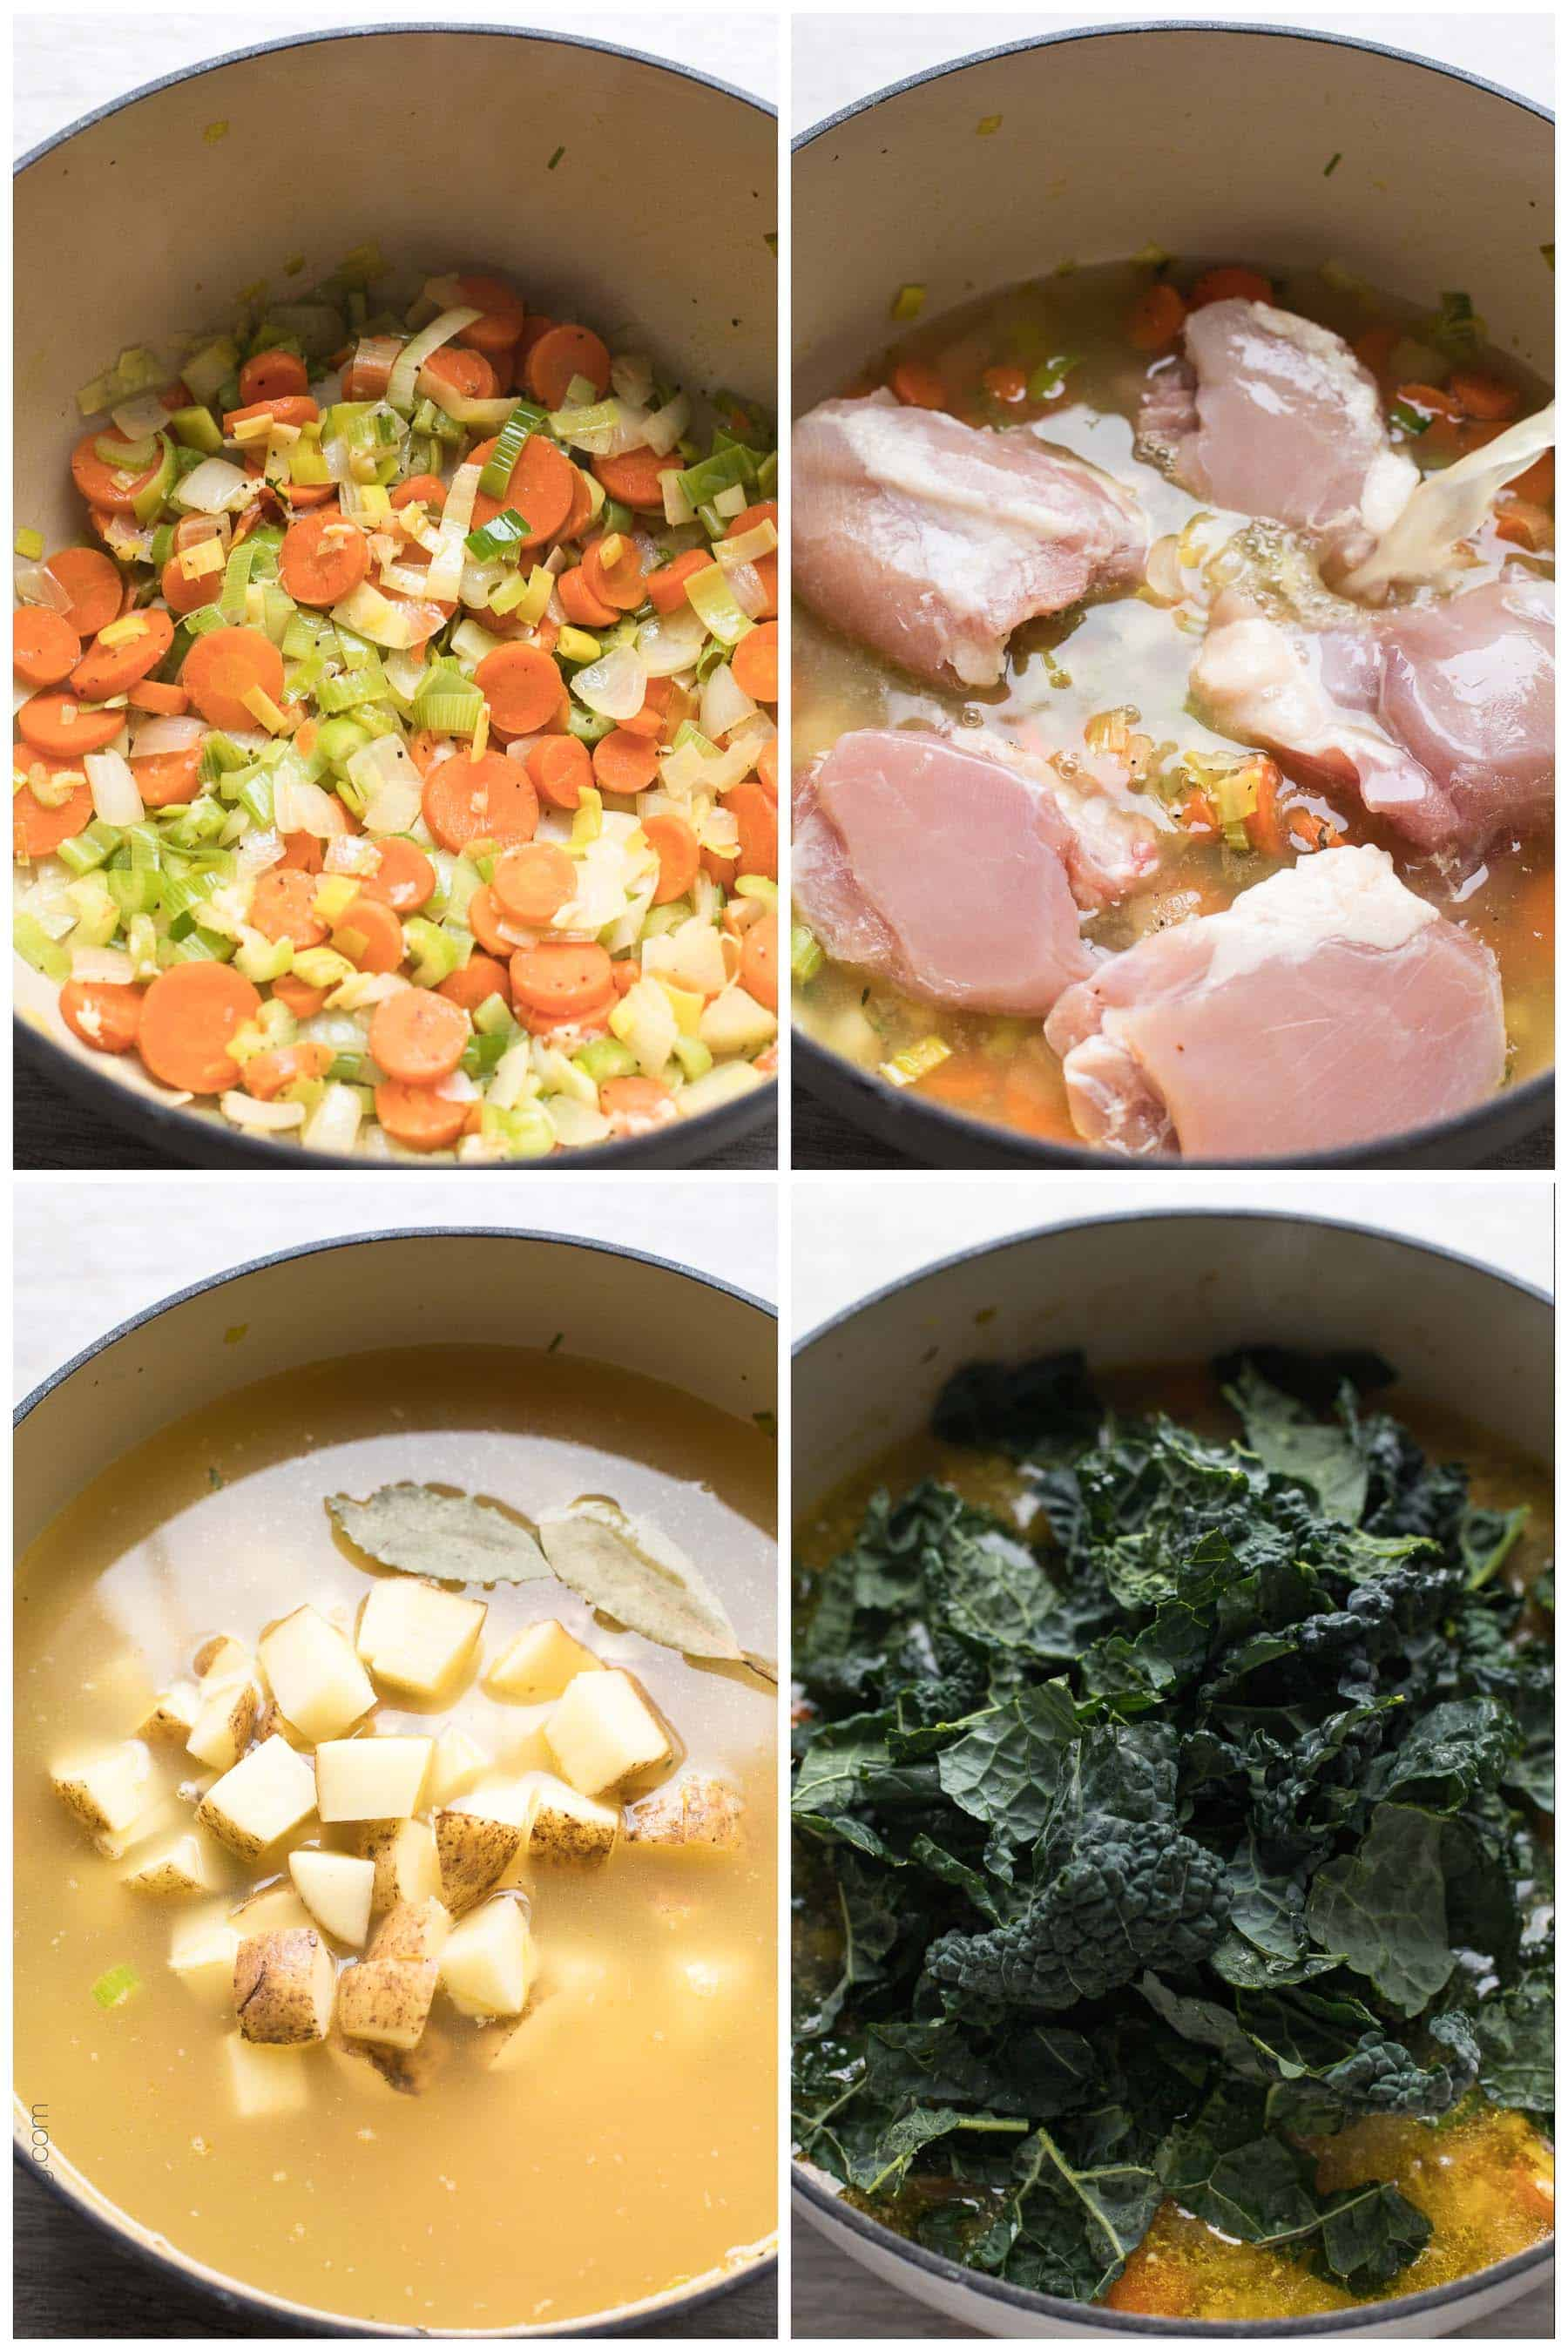 Paleo & Whole30 Potato, Leek & Chicken Soup with Kale - a healthy and flavorful detox soup recipe. Gluten free, grain free, sugar free, dairy free, clean eating.